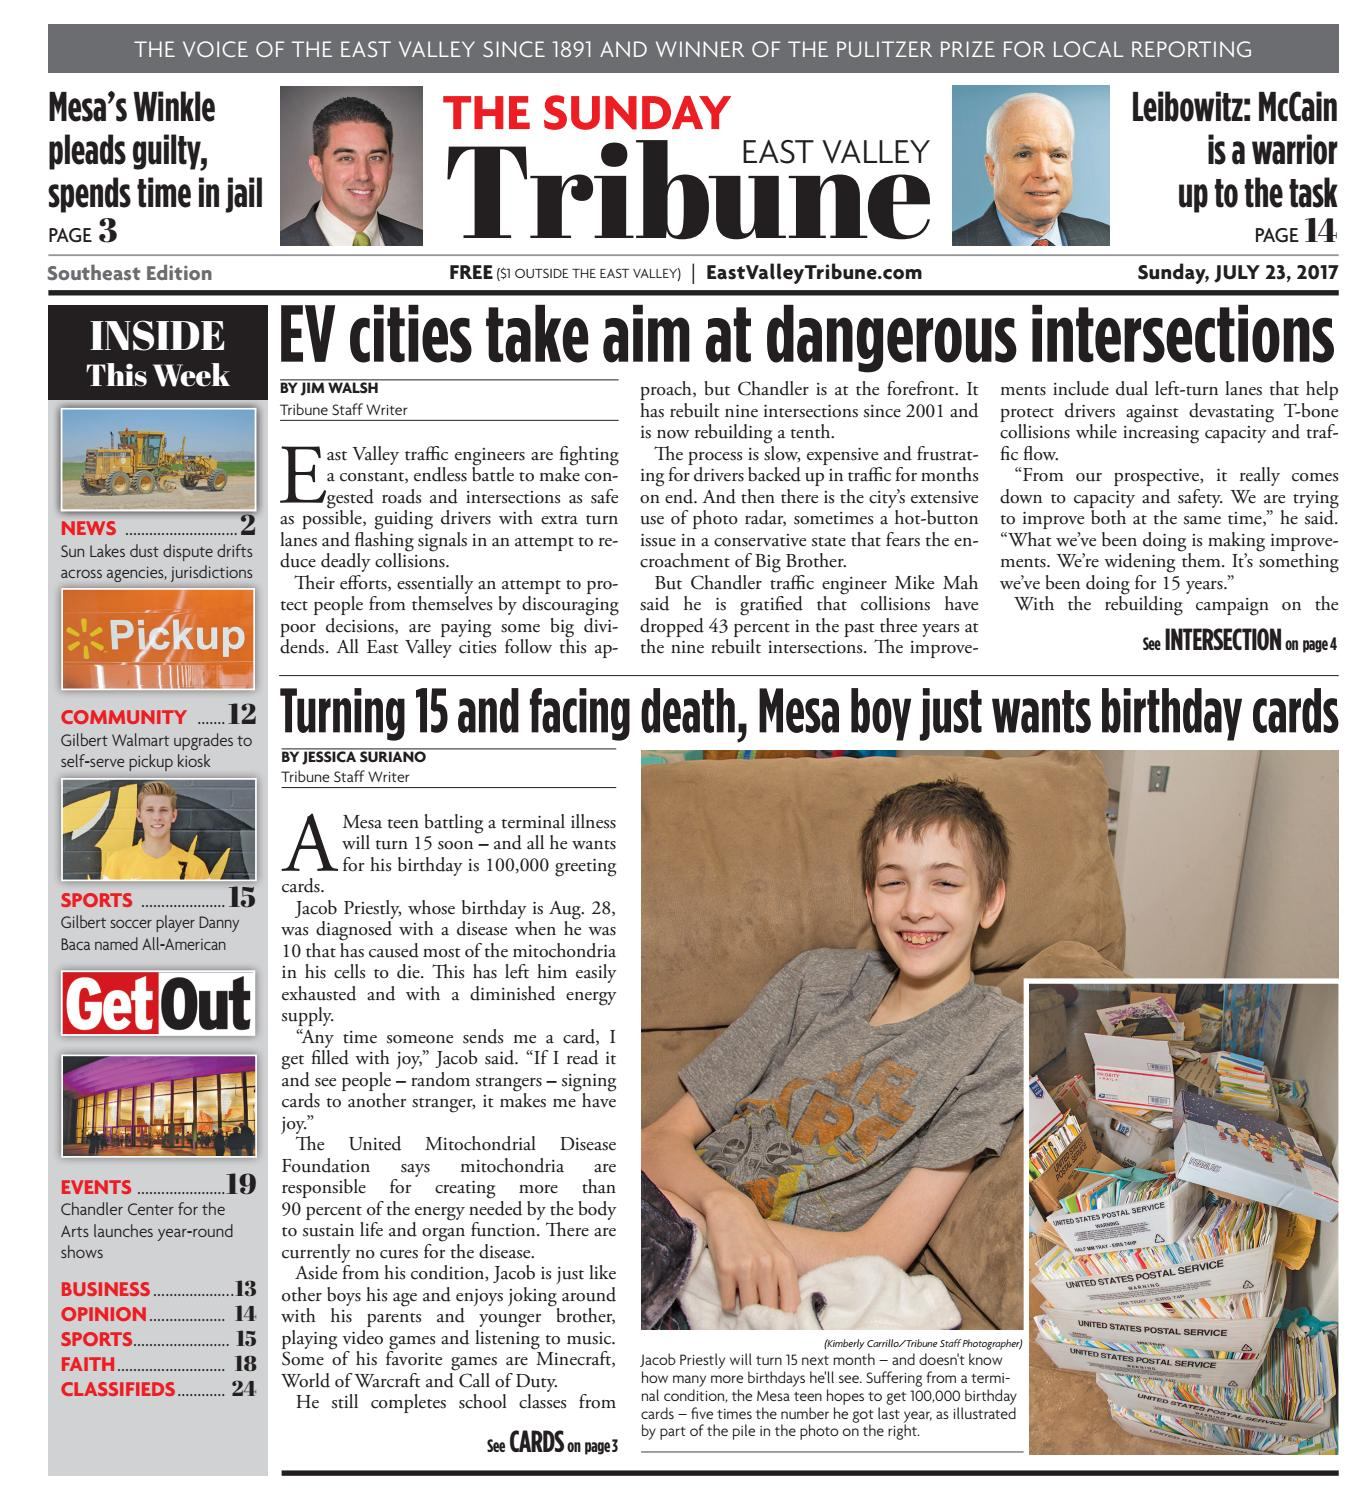 East Valley Tribune: Southeast Edition - July 23, 2017